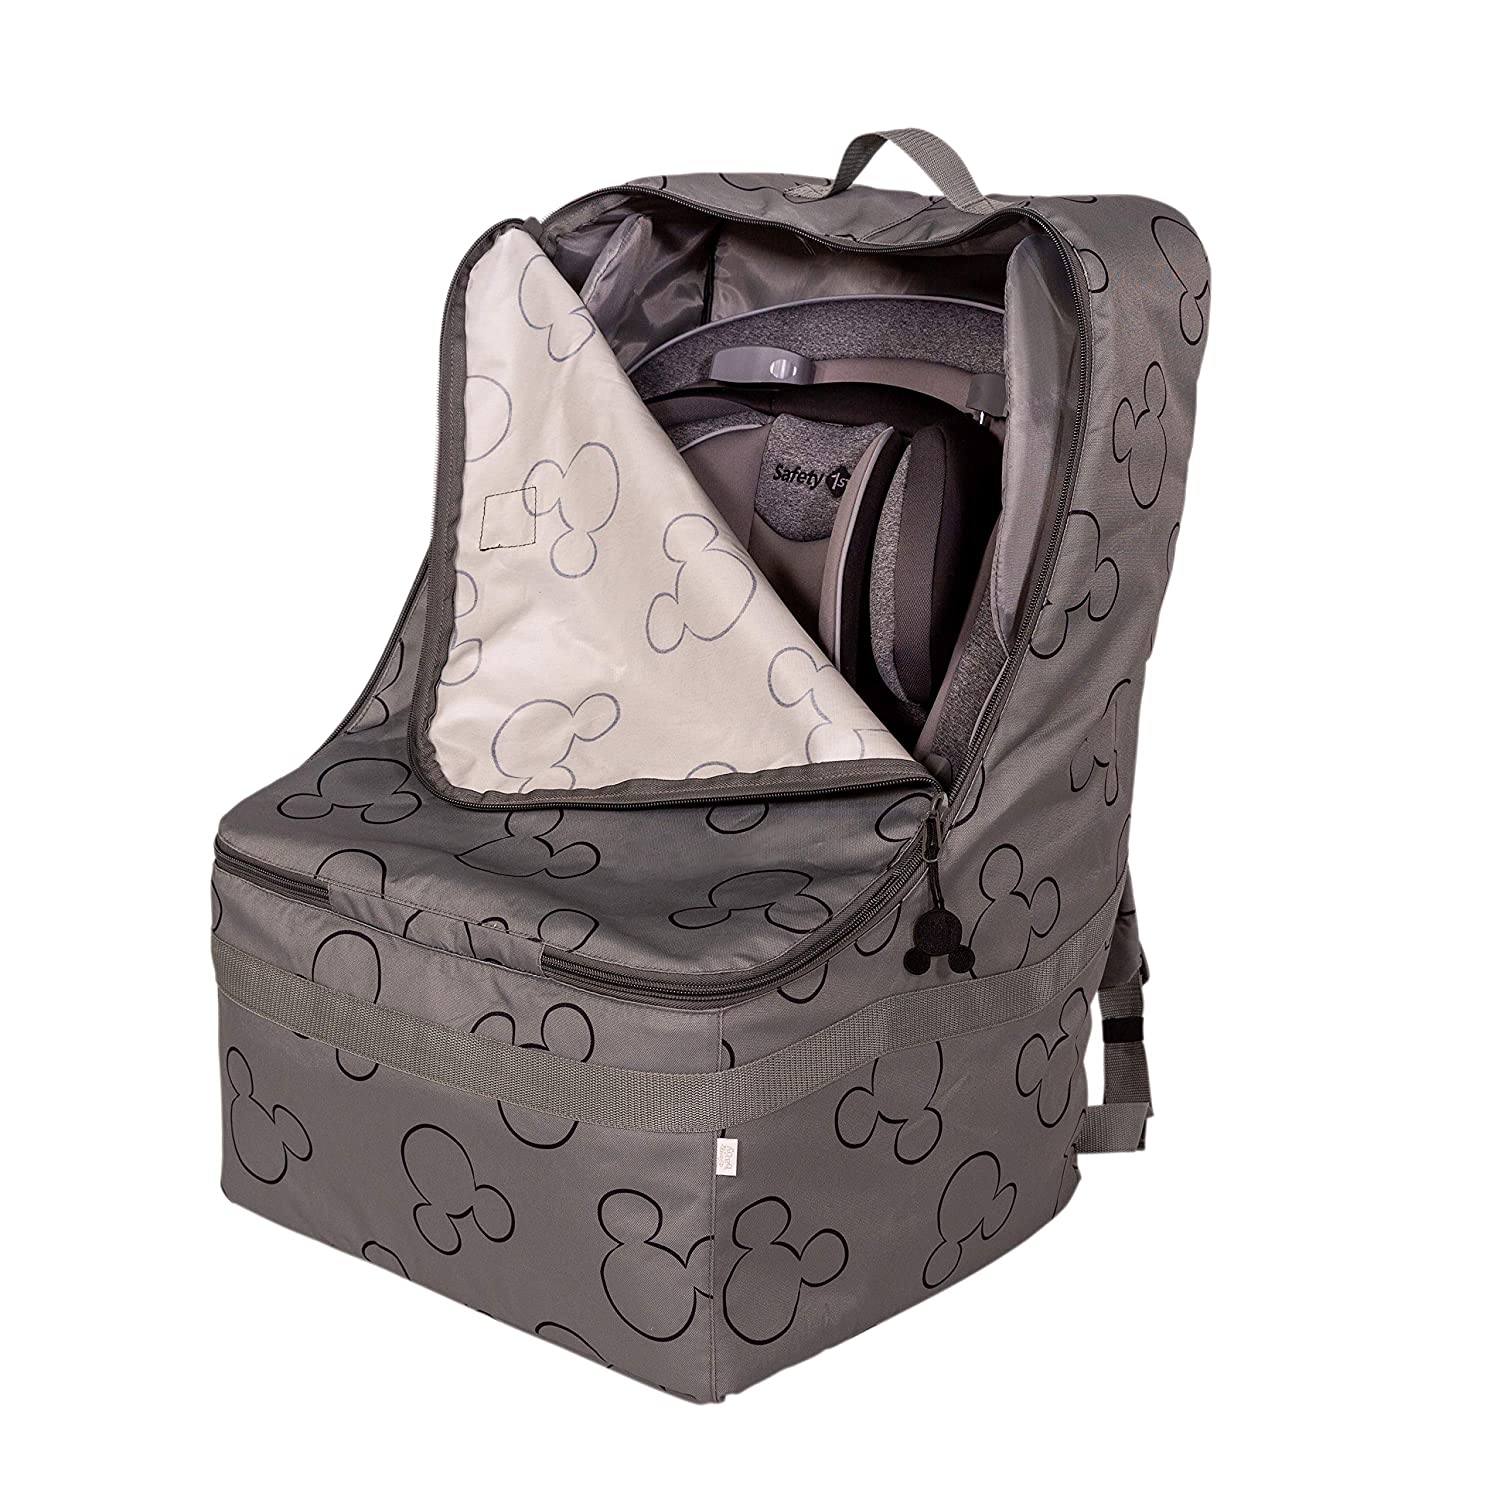 J.L. Childress Disney Baby Ultimate Backpack Padded Car Seat Travel Bag, Grey